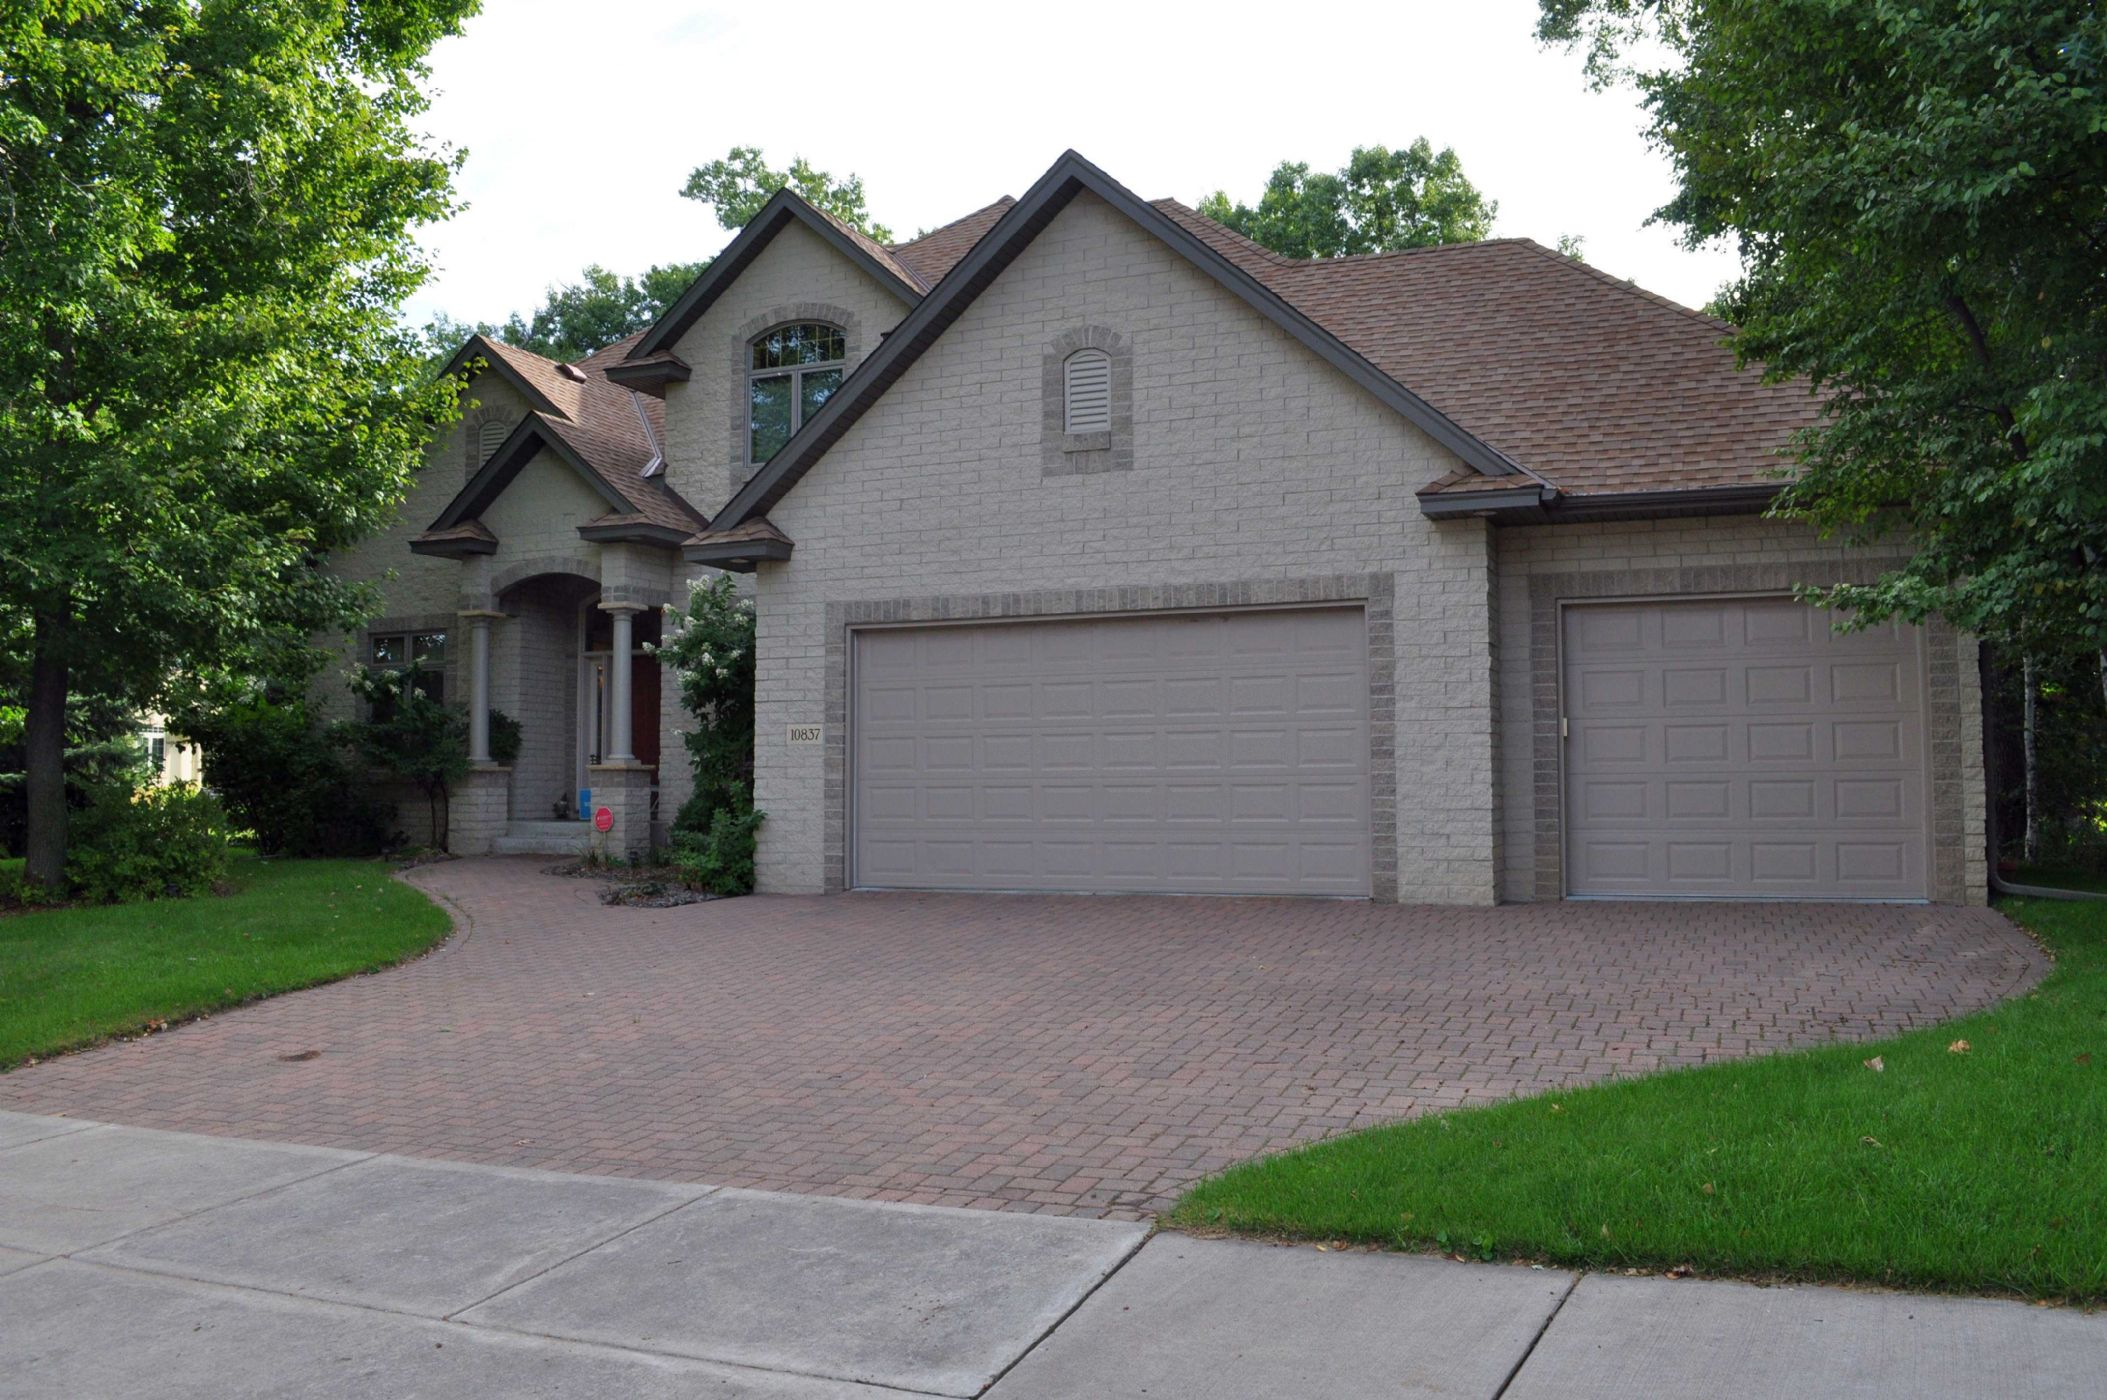 St. Louis Park Home, MN Real Estate Listing